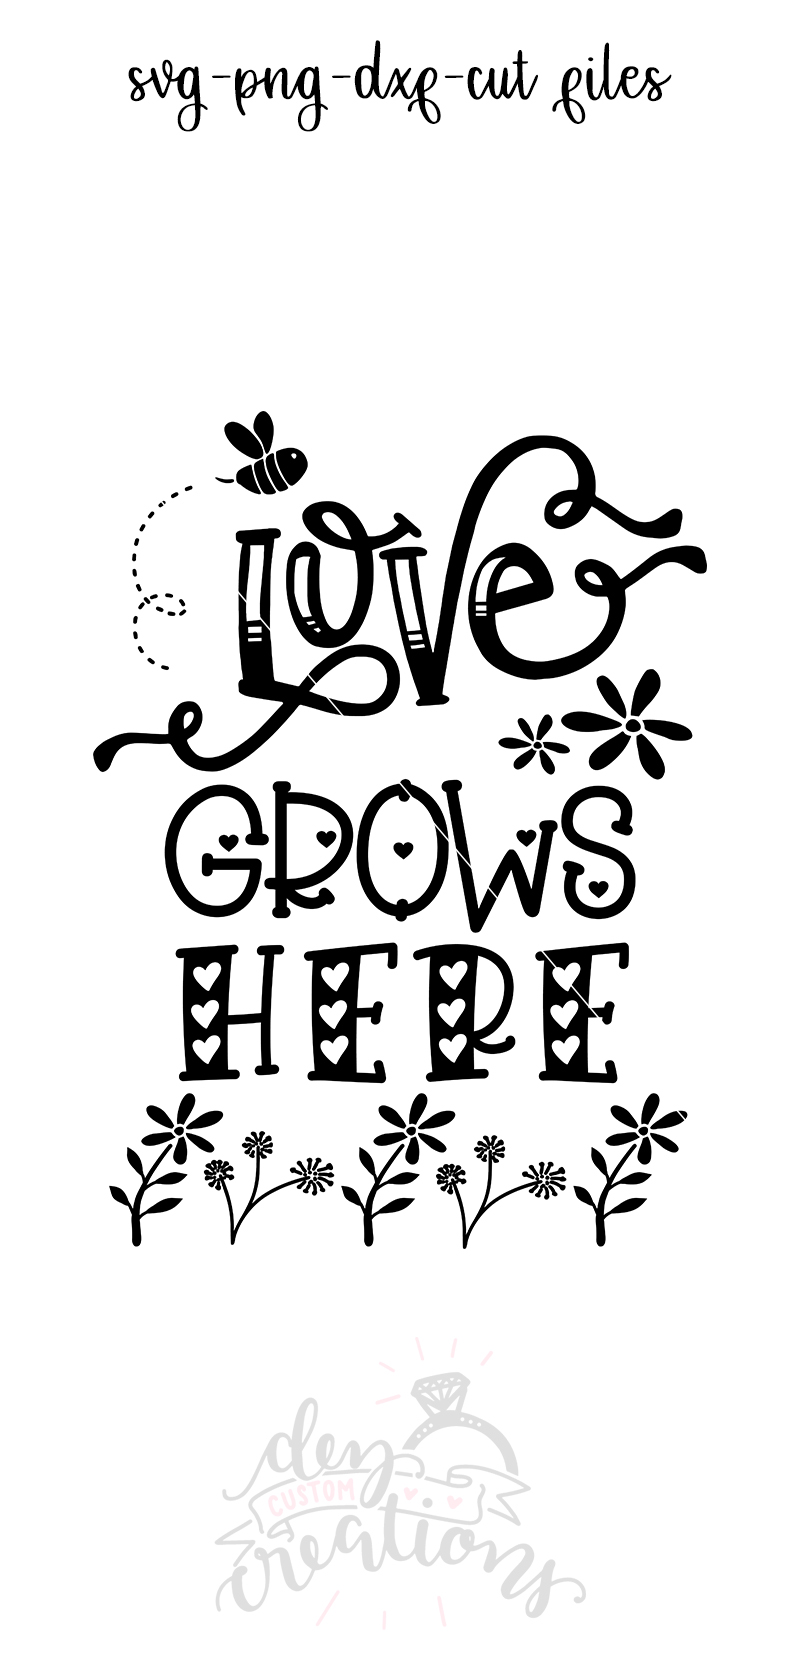 Love Grows Here 2- SVG DXF PNG - Crafting Cut Files example image 3